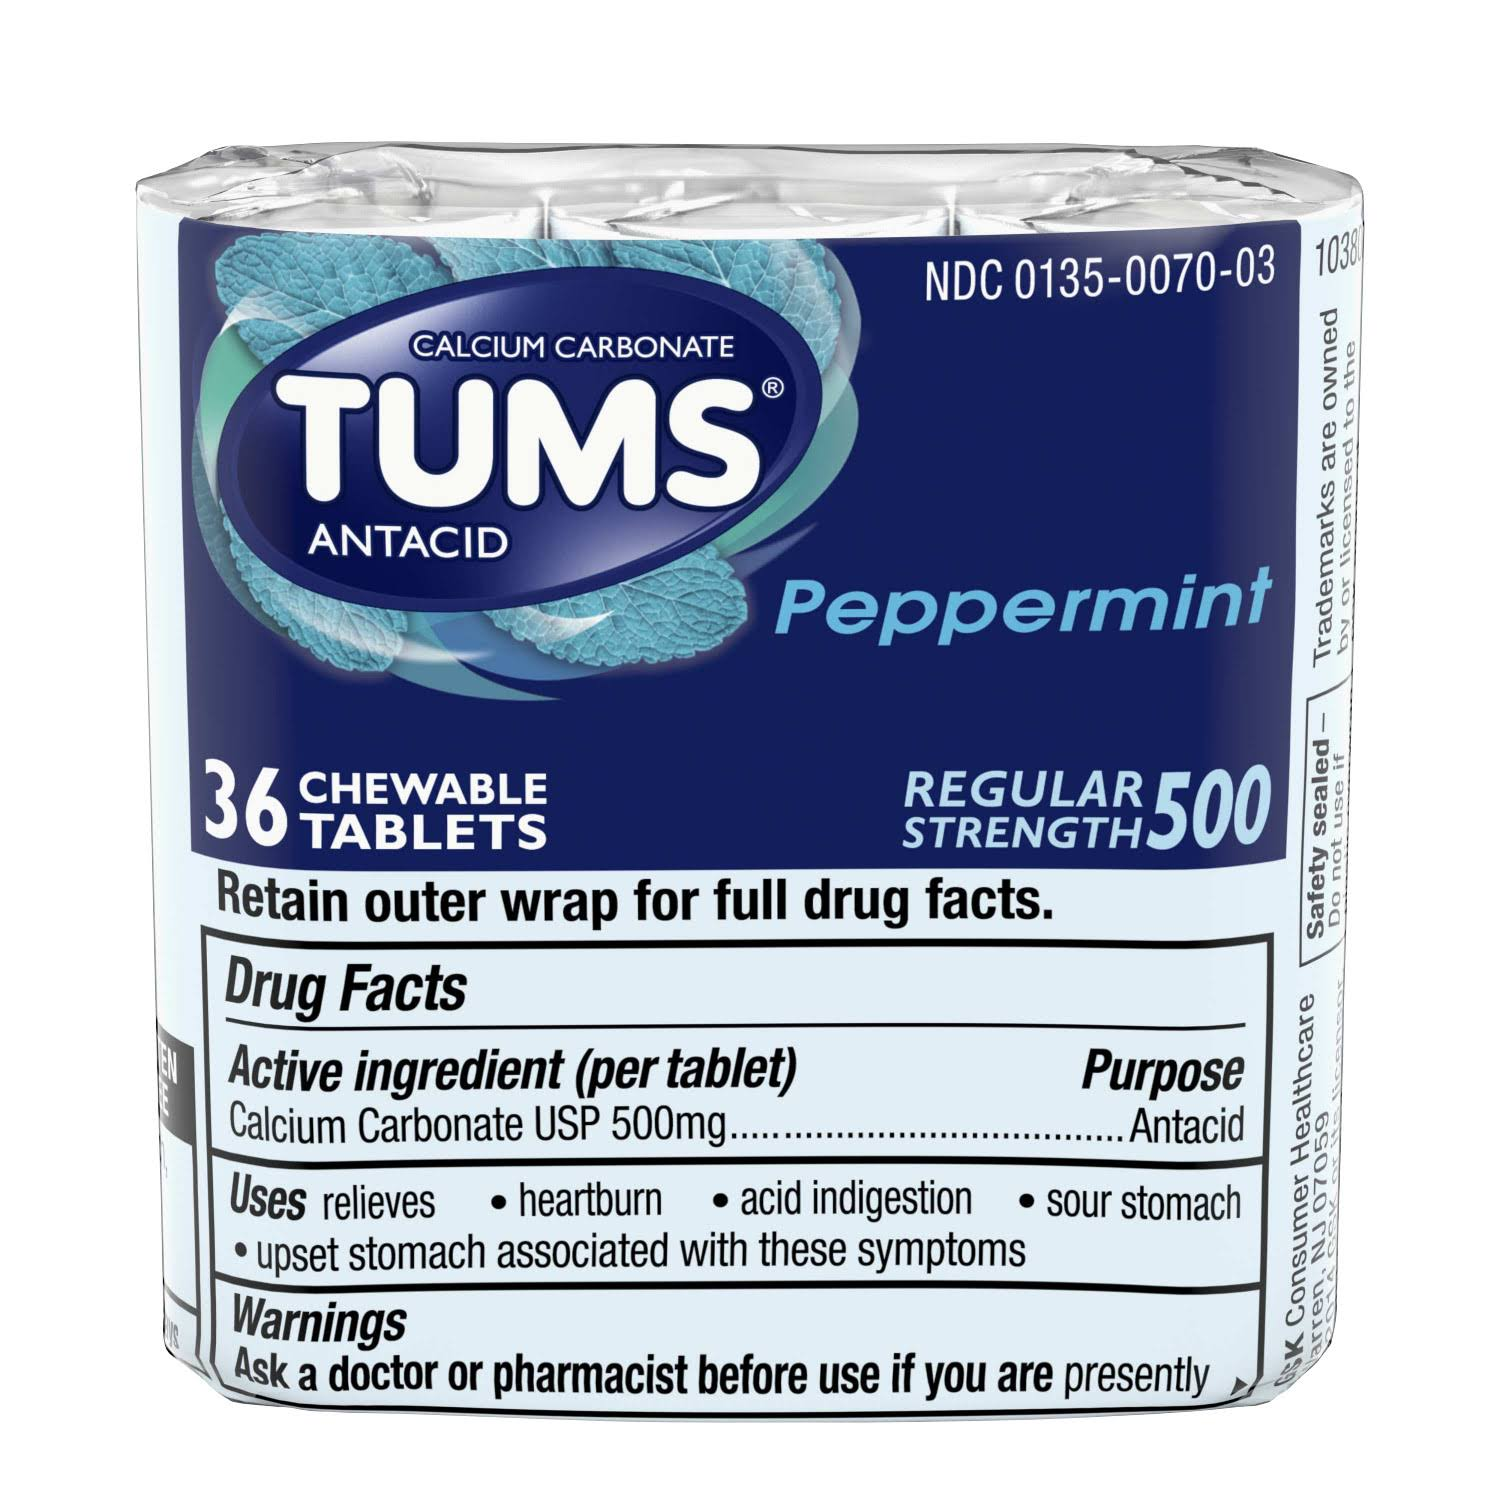 Tums Regular Strength Antacid - Peppermint, 36 Chewable Tablets